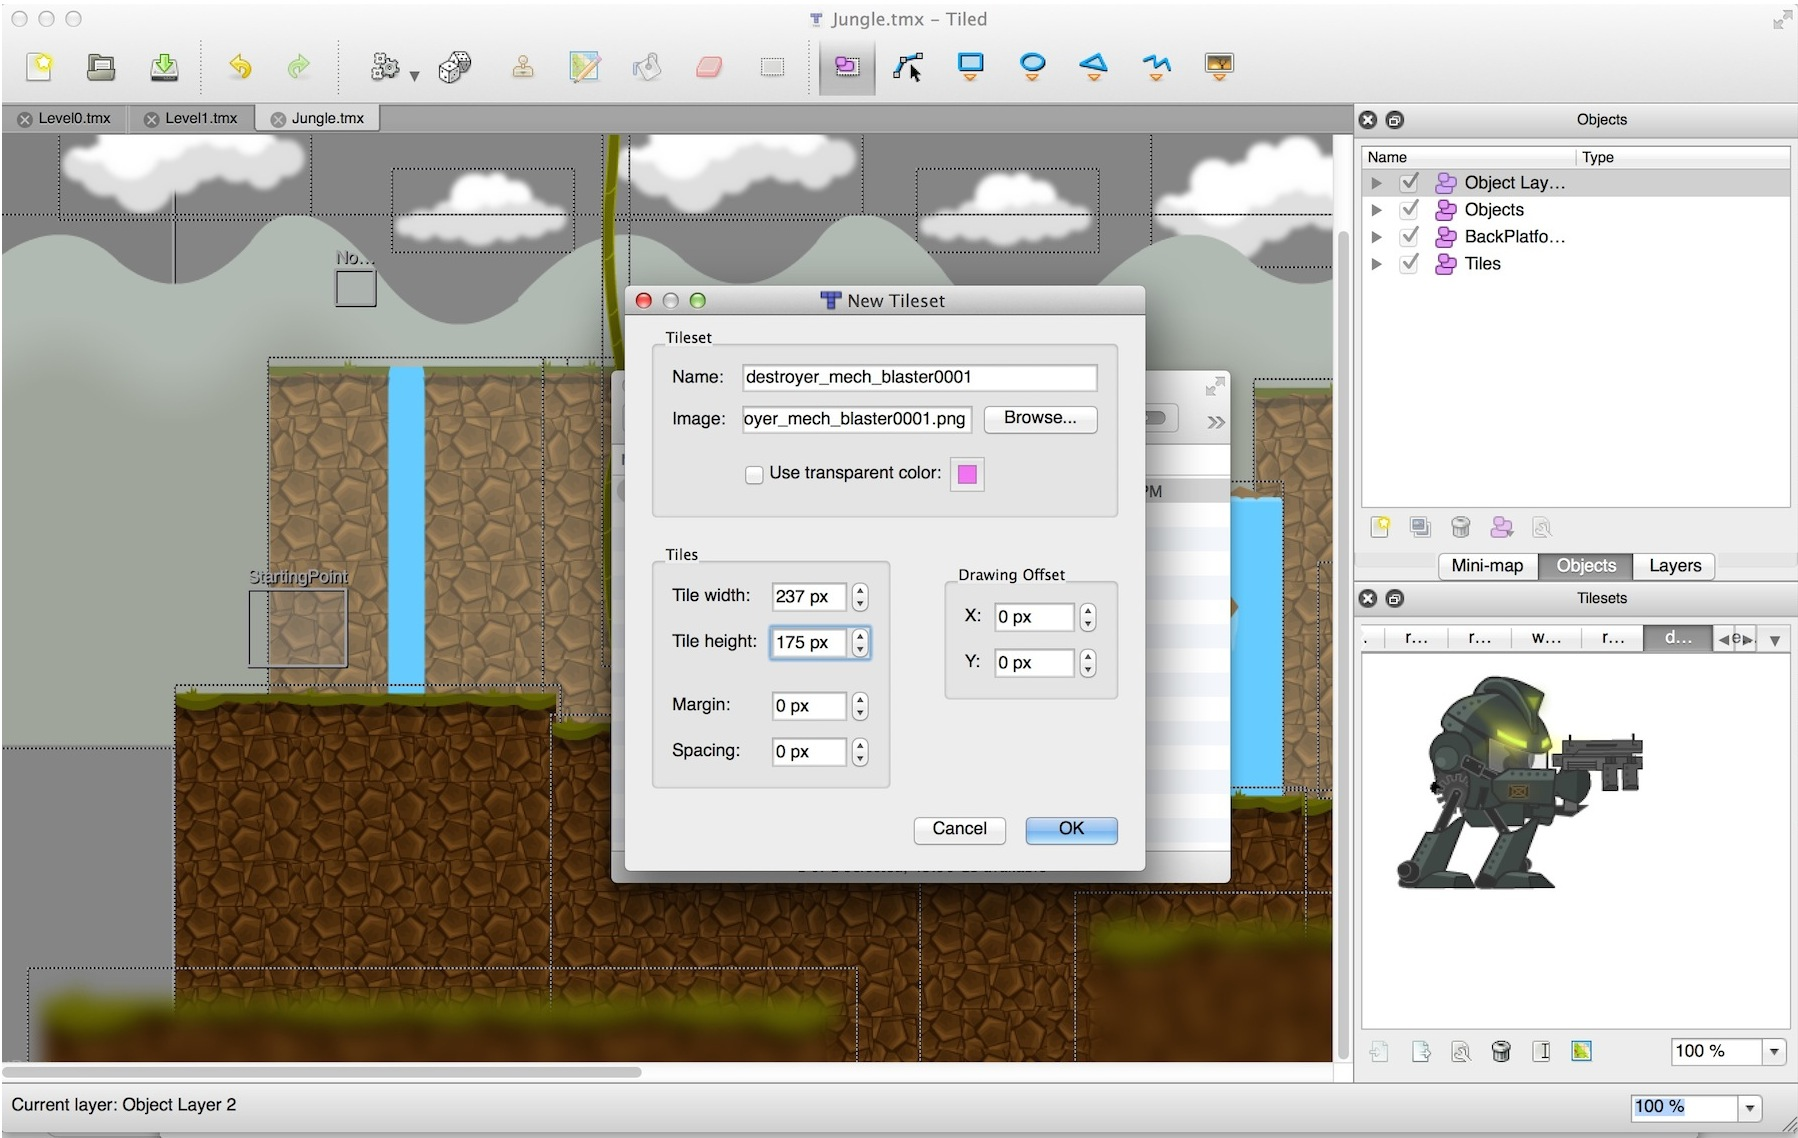 Step 6 - Integrating Objects with the Fantastic Worlds iOS Starter Kit